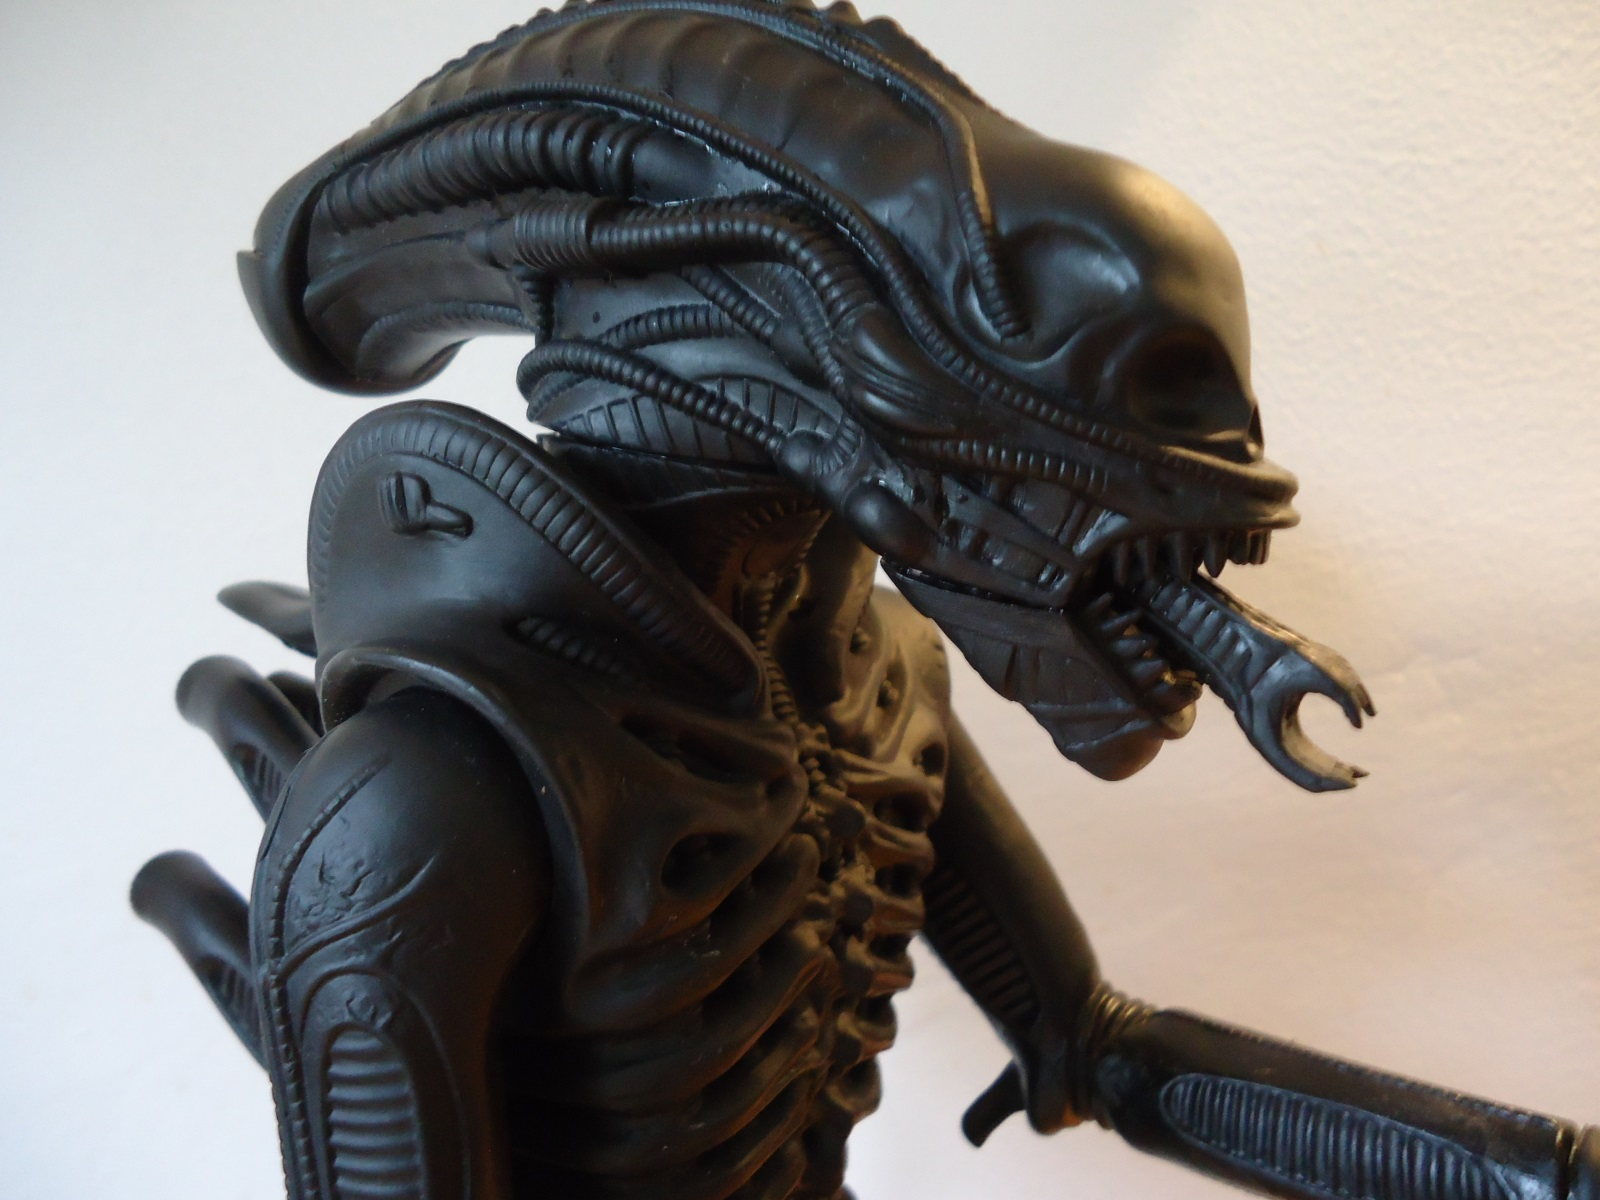 The head with the rubber carapace removed from the 1991 Halcyon ALIEN model kit.